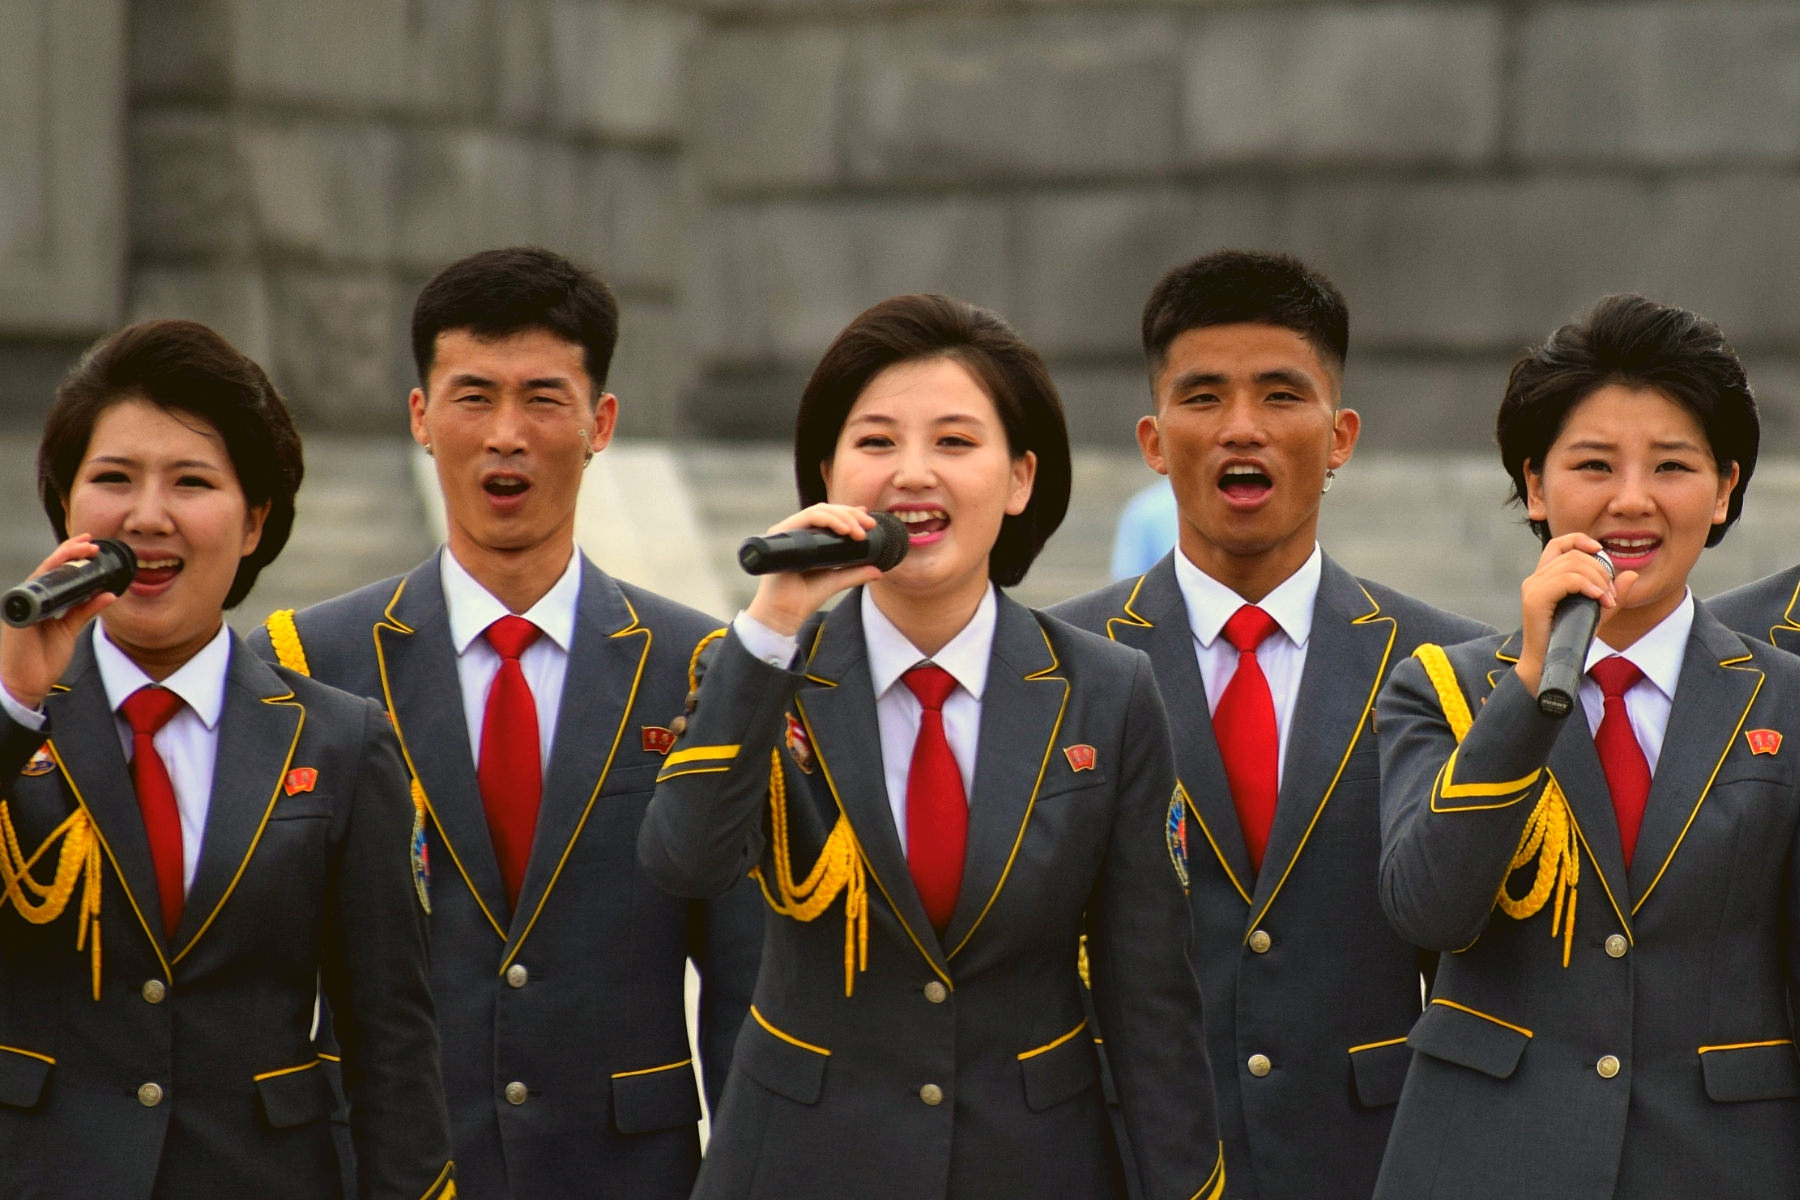 Performance by the Party Monument in Pyongang held by singers in North Korea to celebrate the Liberation of Korea from Japanese colonial rule (15 août ). Picture taken by KTG. Join us to explore North Korea (DPRK)